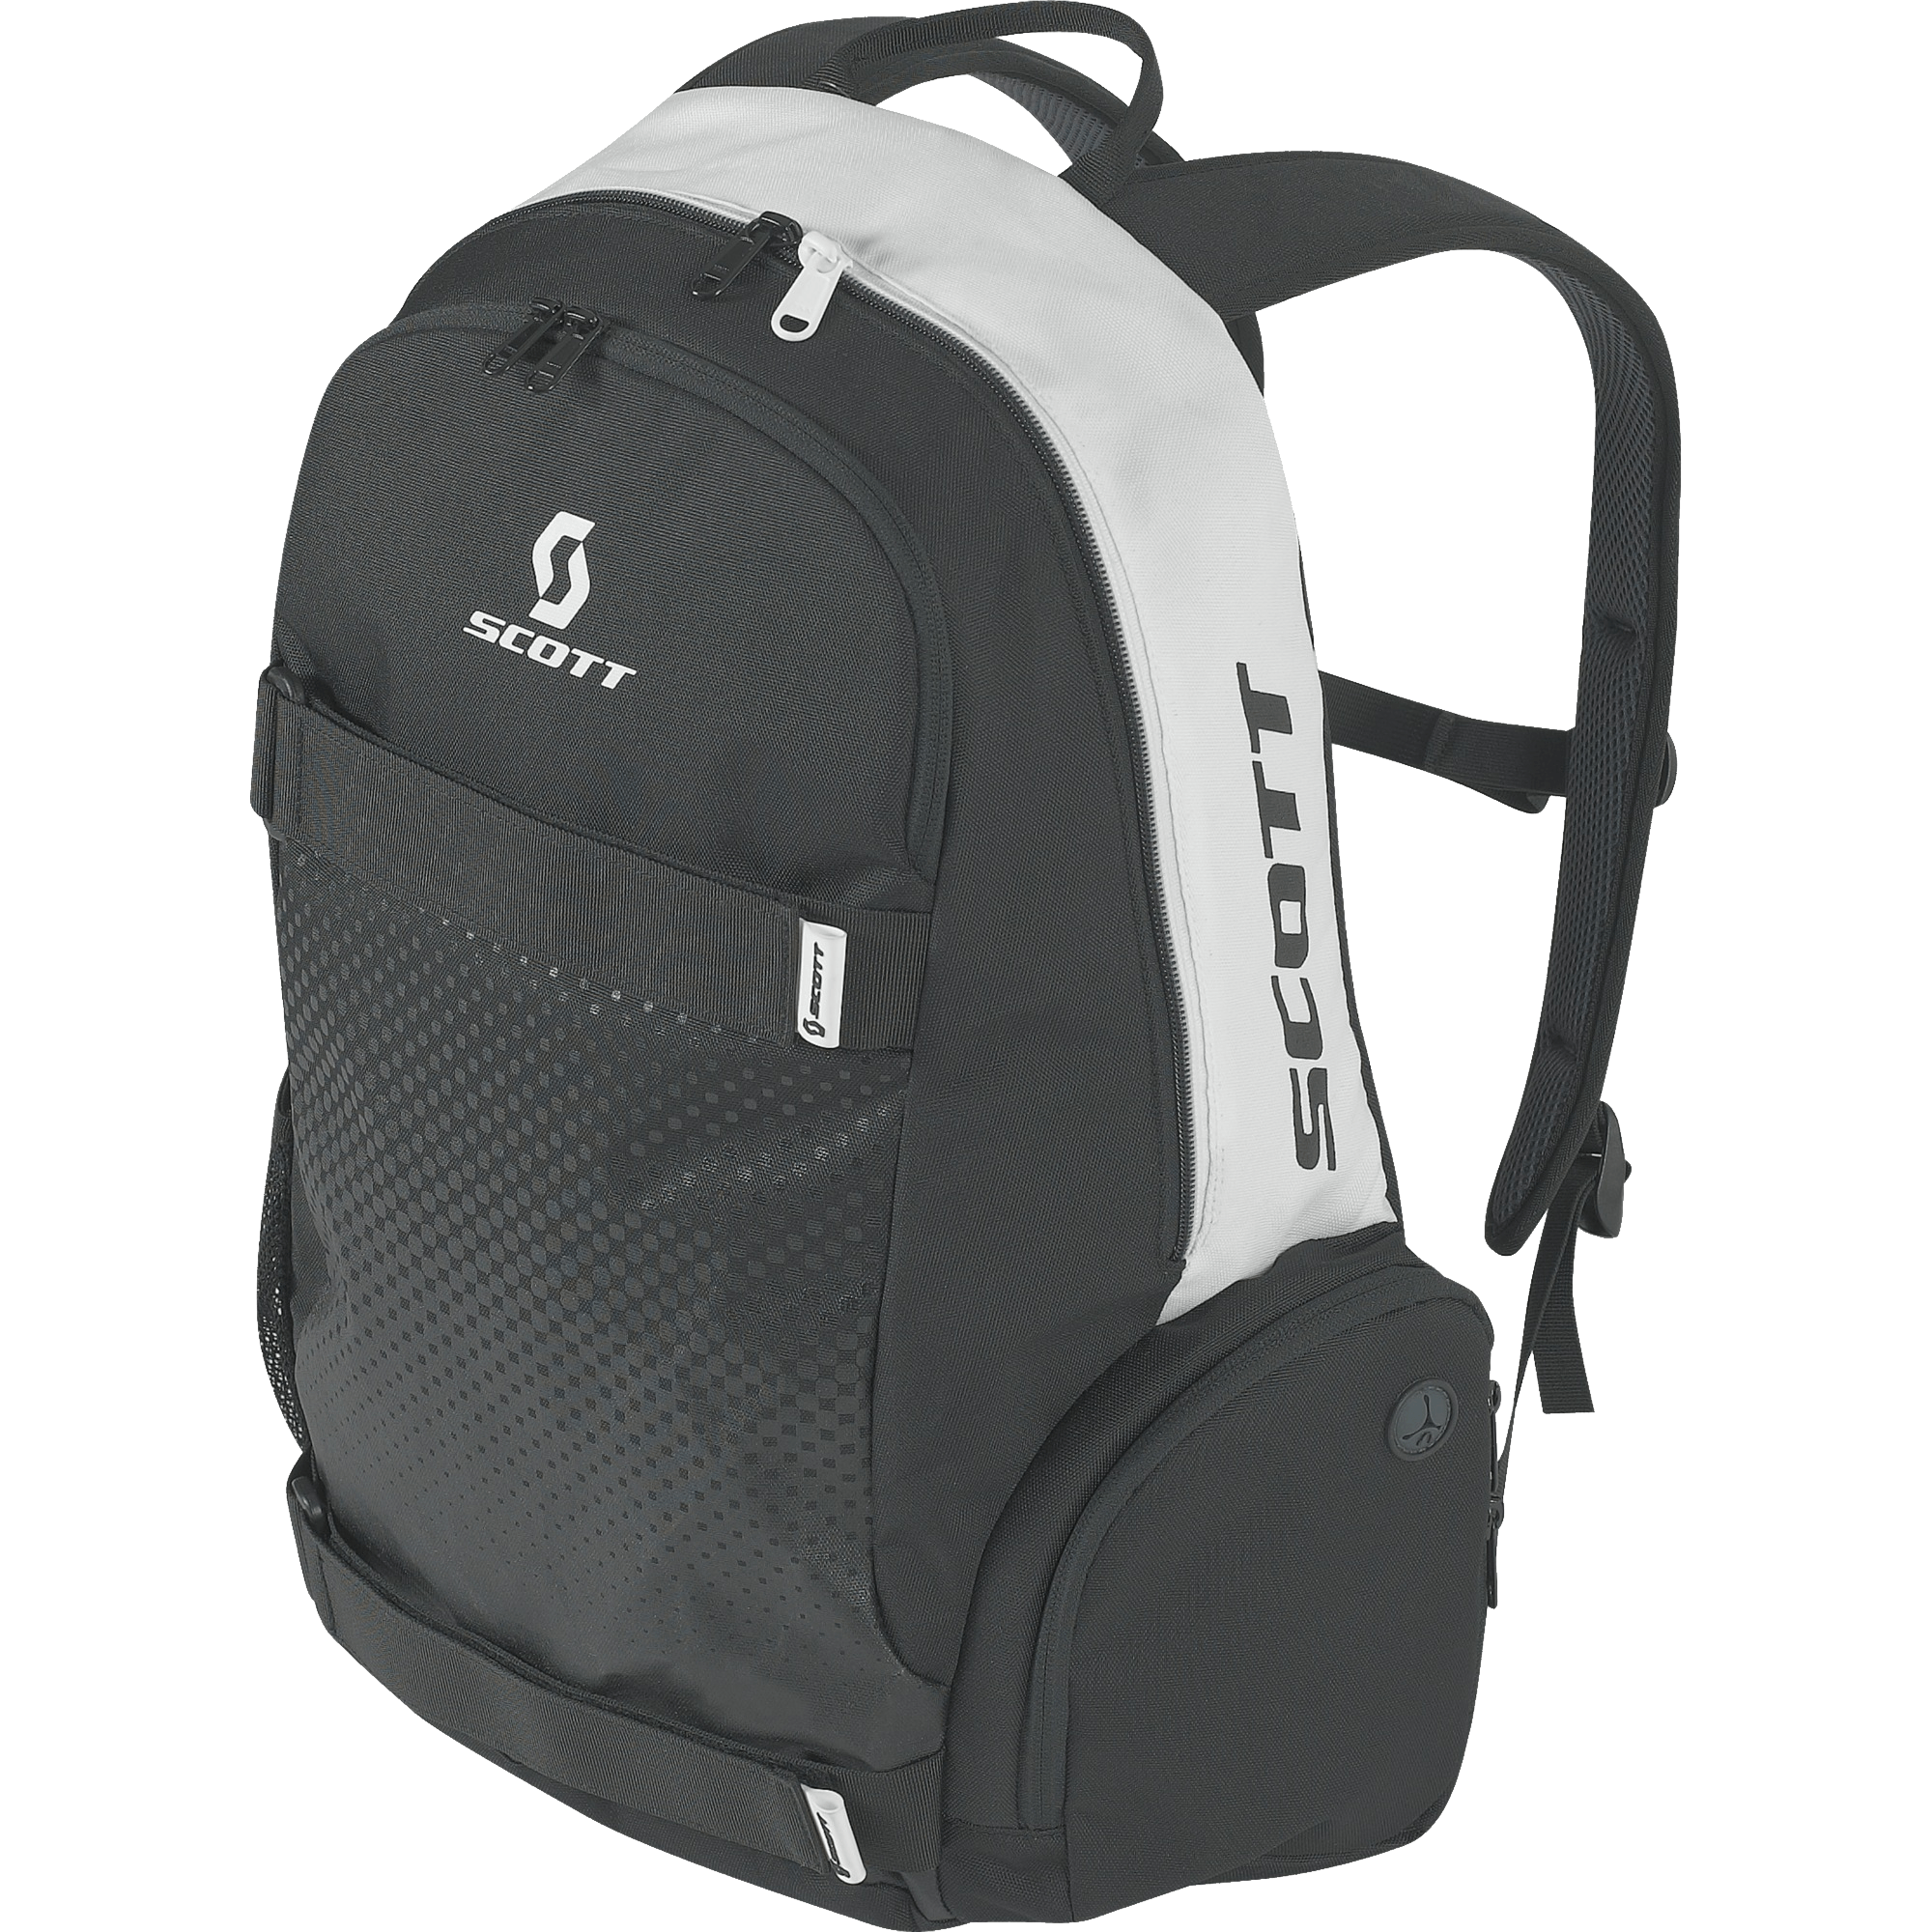 . PlusPng.com png images transpa images free png images download; courchevel backpack  PlusPng.com  - Backpack PNG